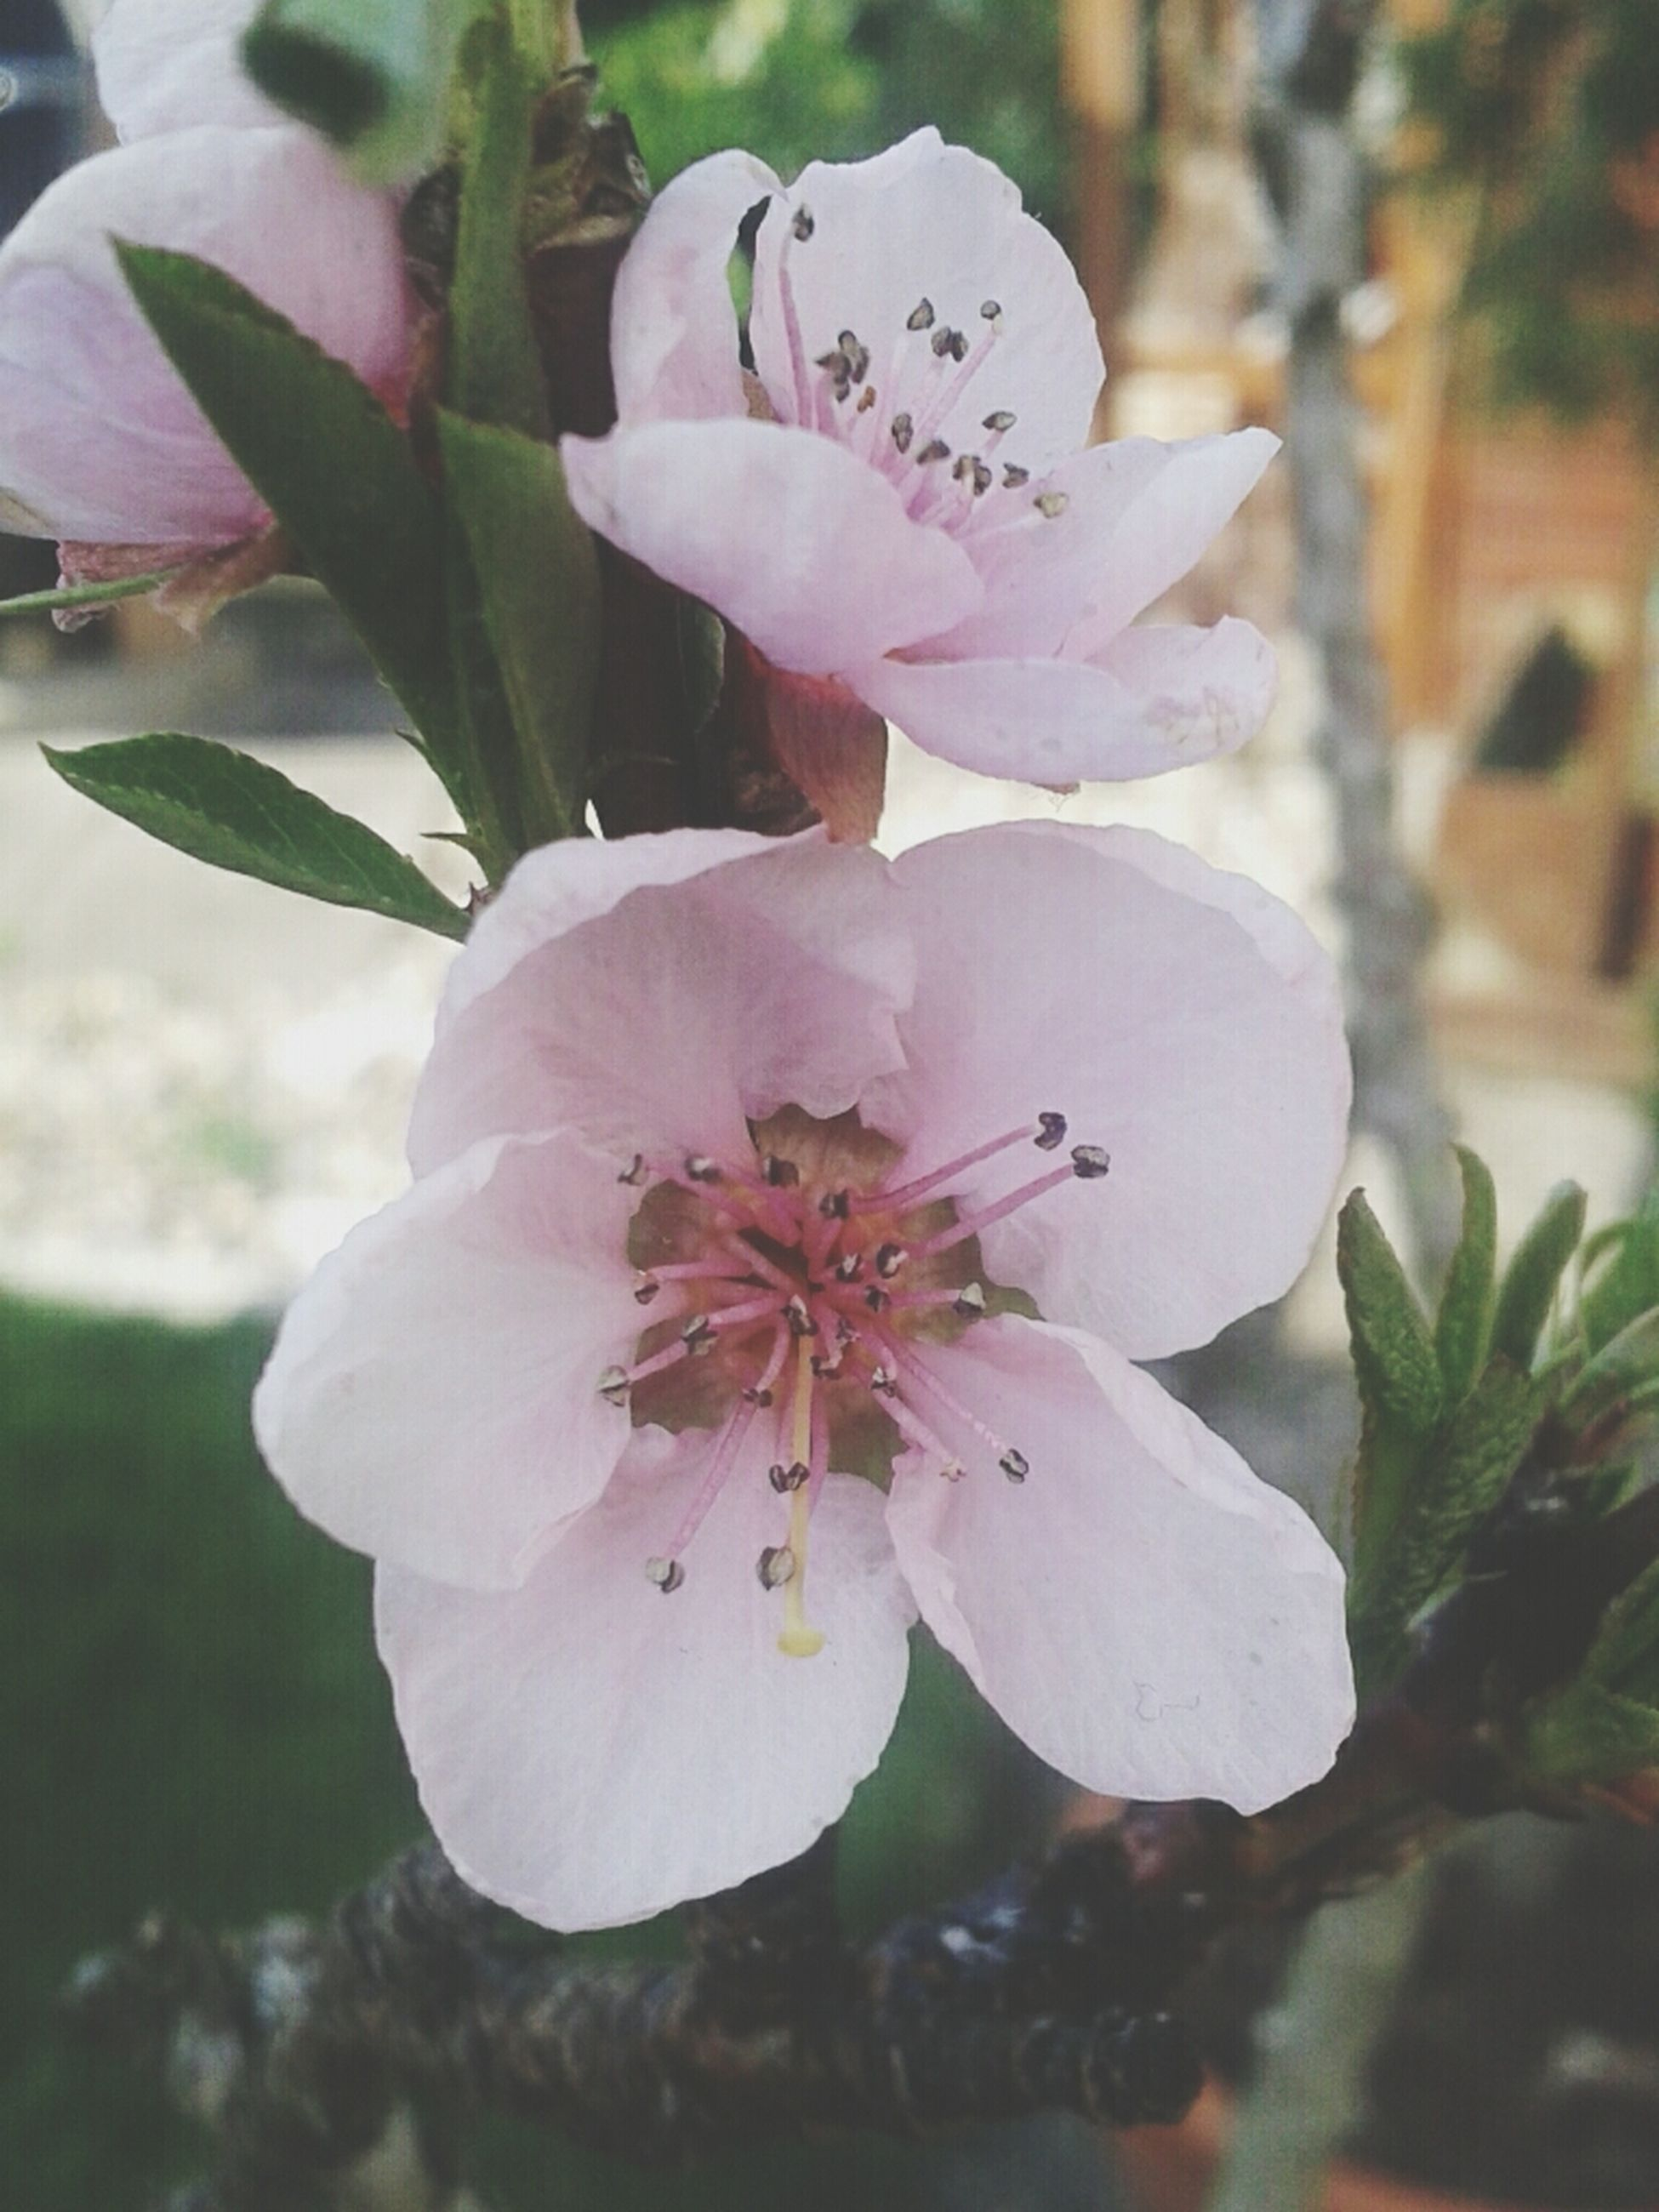 flower, petal, freshness, fragility, flower head, growth, close-up, beauty in nature, stamen, focus on foreground, pollen, blooming, nature, single flower, in bloom, plant, blossom, pink color, white color, day